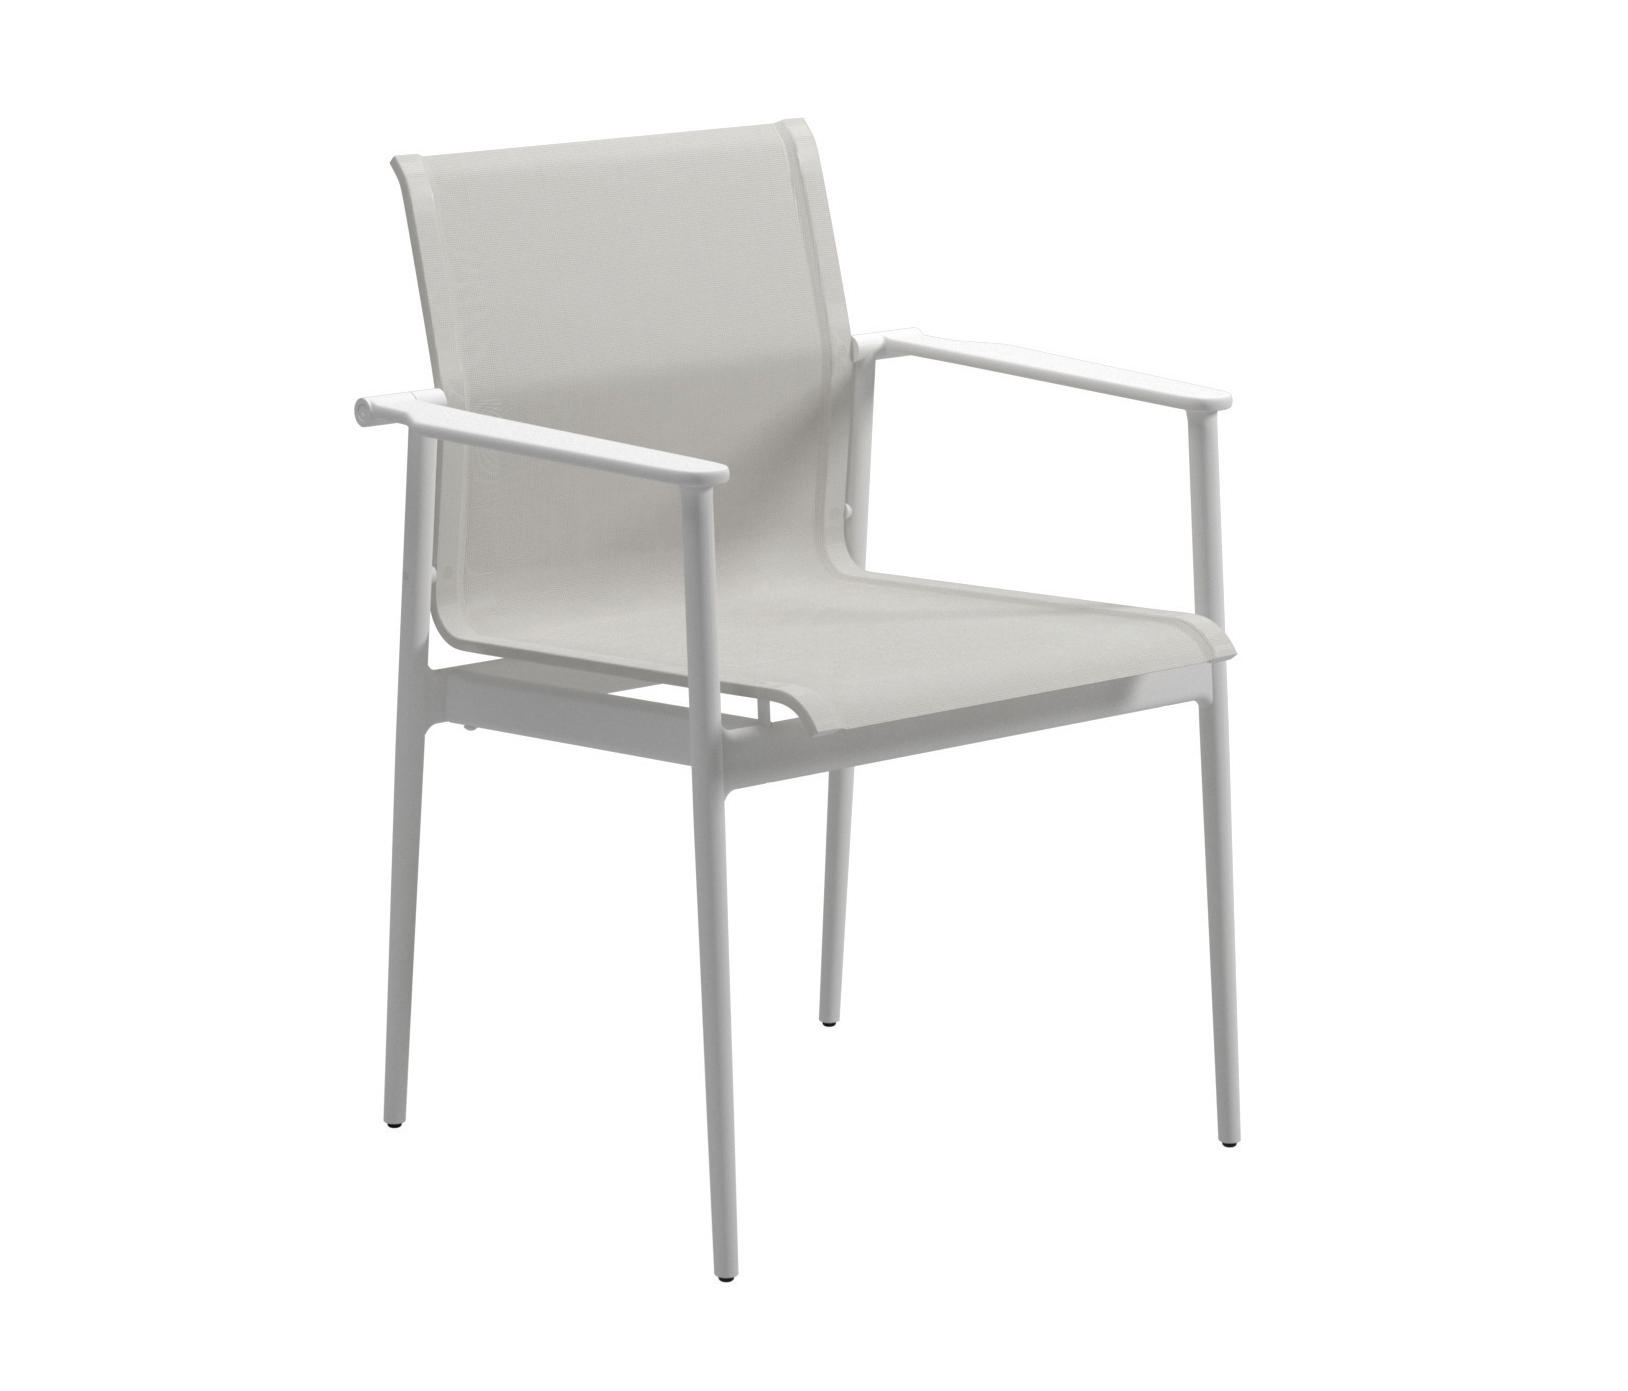 chair with arms serta office review 180 stacking chairs from gloster furniture gmbh by